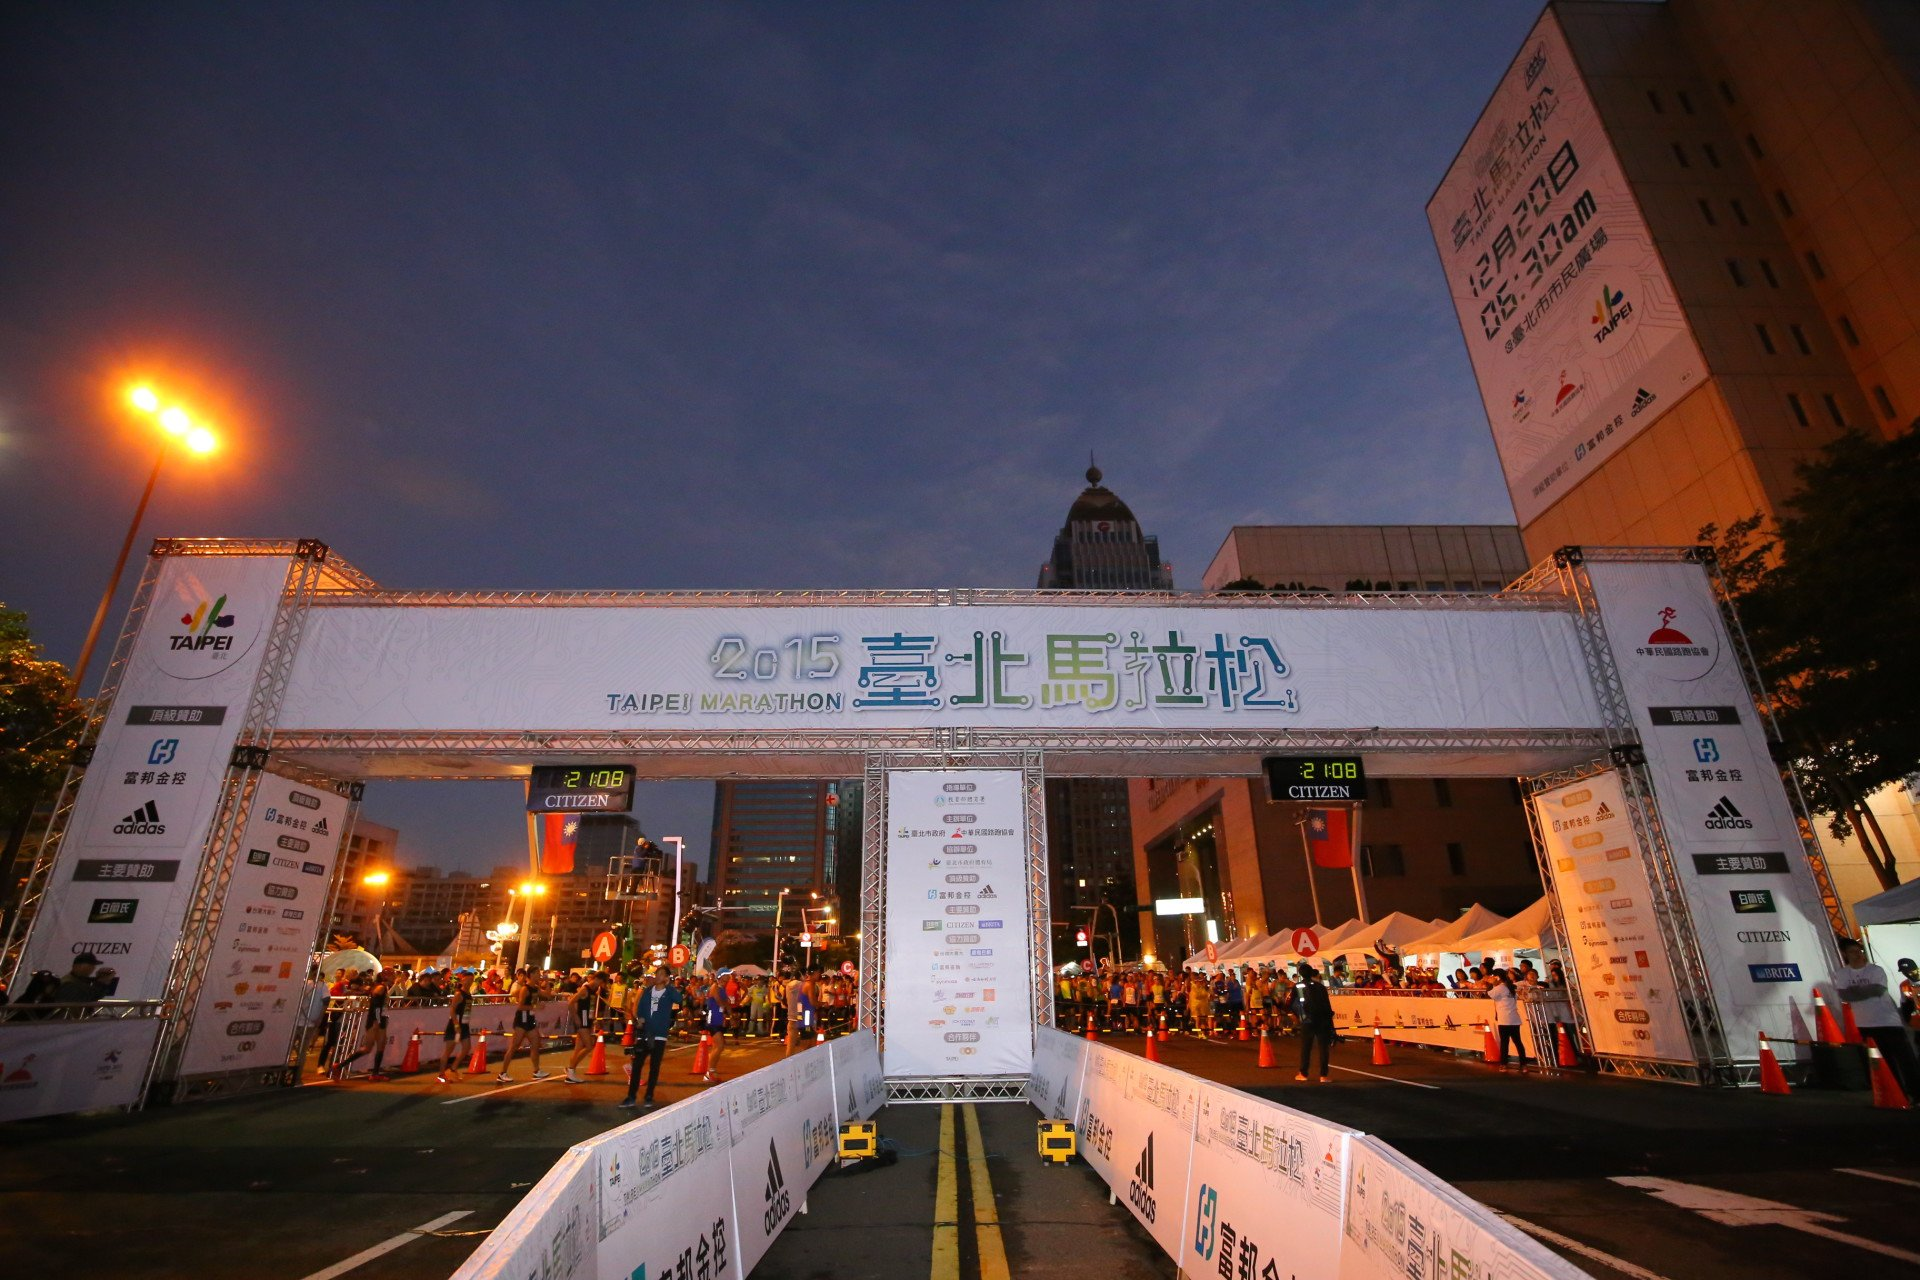 Best time to see Taipei Marathon in Taiwan 2019